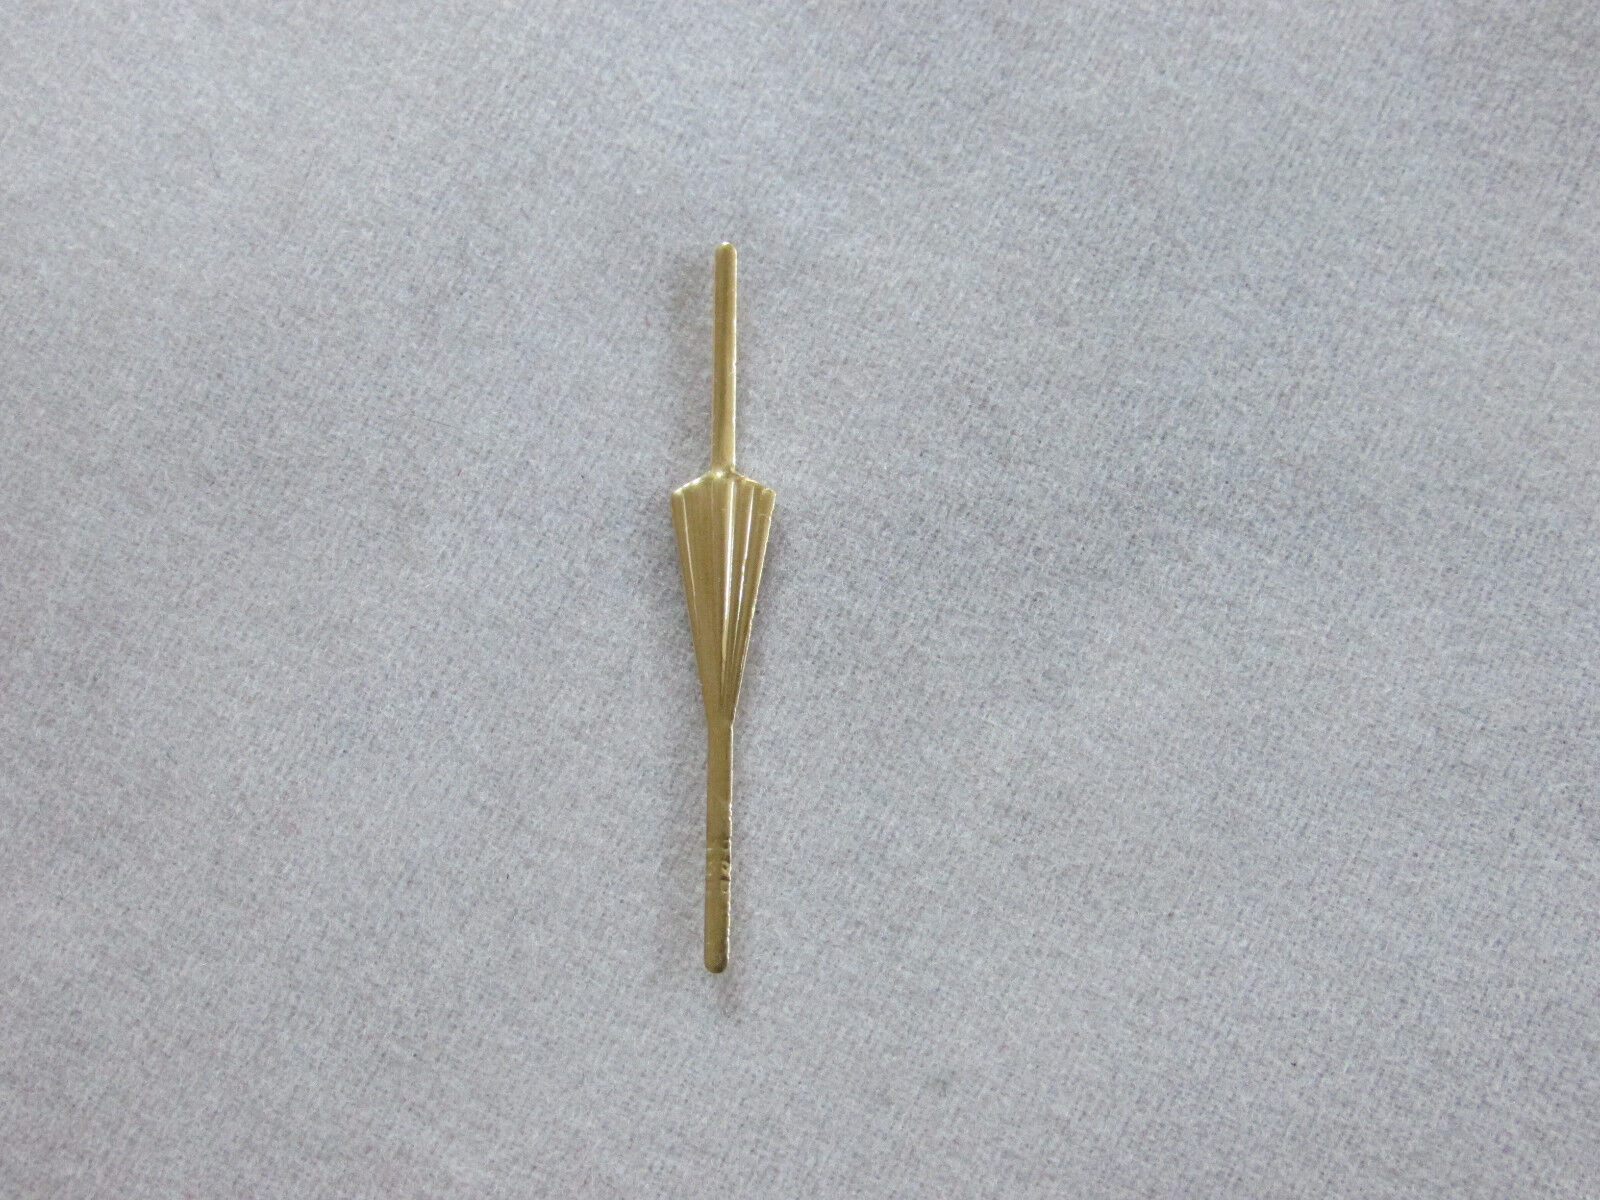 50 Arrow Connector Pins 45mm Gold Chandelier Parts Lamp Crystal Prism Bead